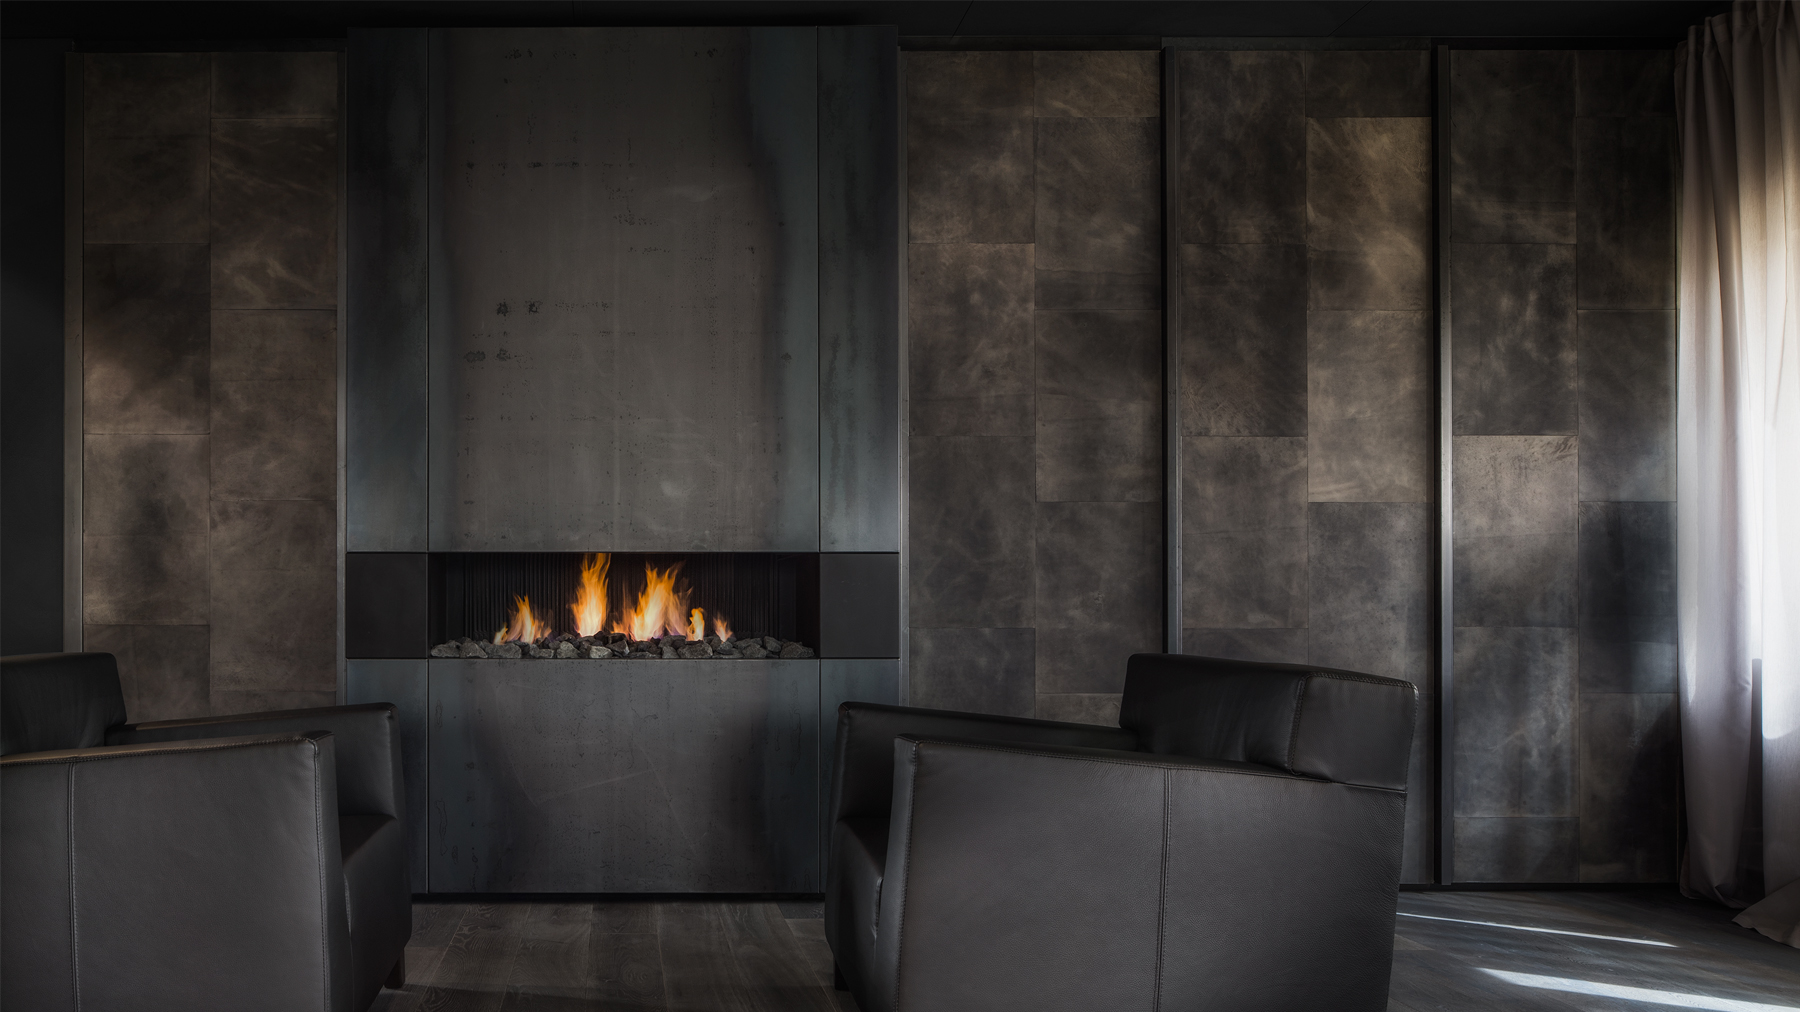 This Elegantly Dark Fireplace Seems To Blend In With The Wall Backdrop In  This Striking Living Room. The Floor To Ceiling Design Adds Height To The  Whole ...